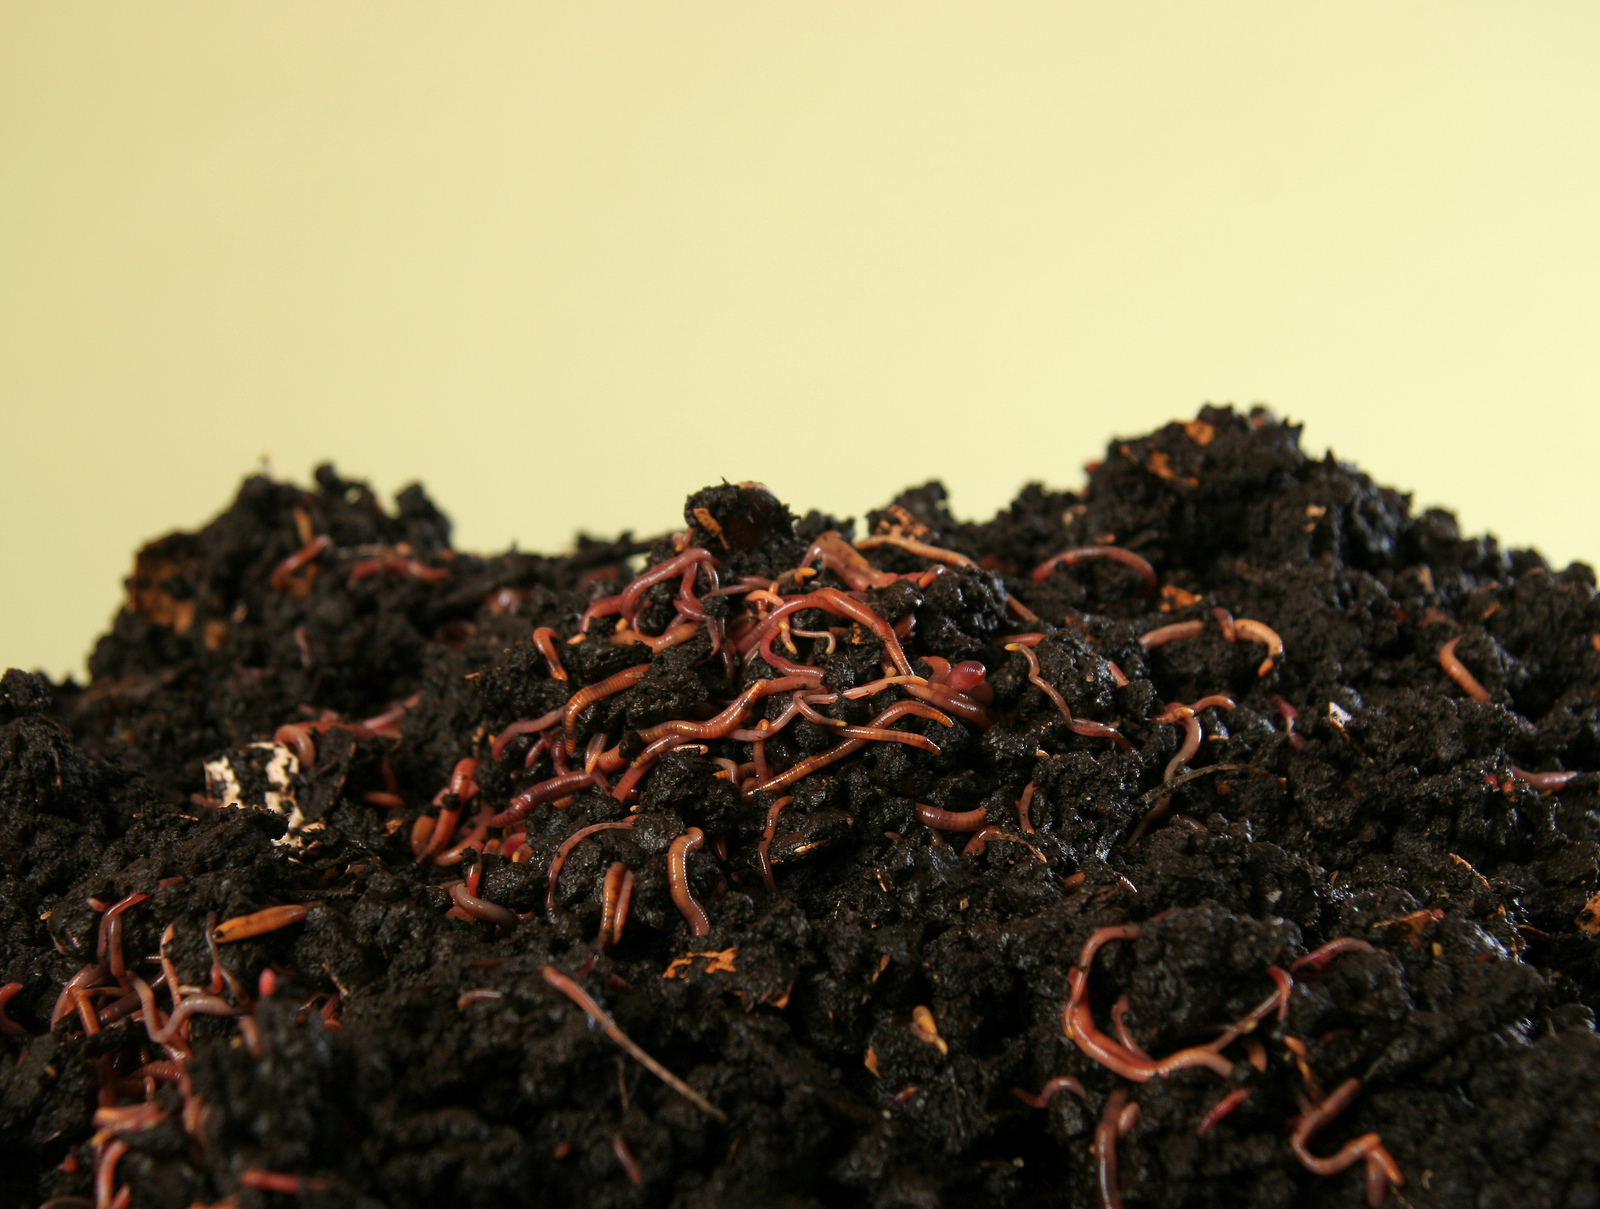 Redworms for composting